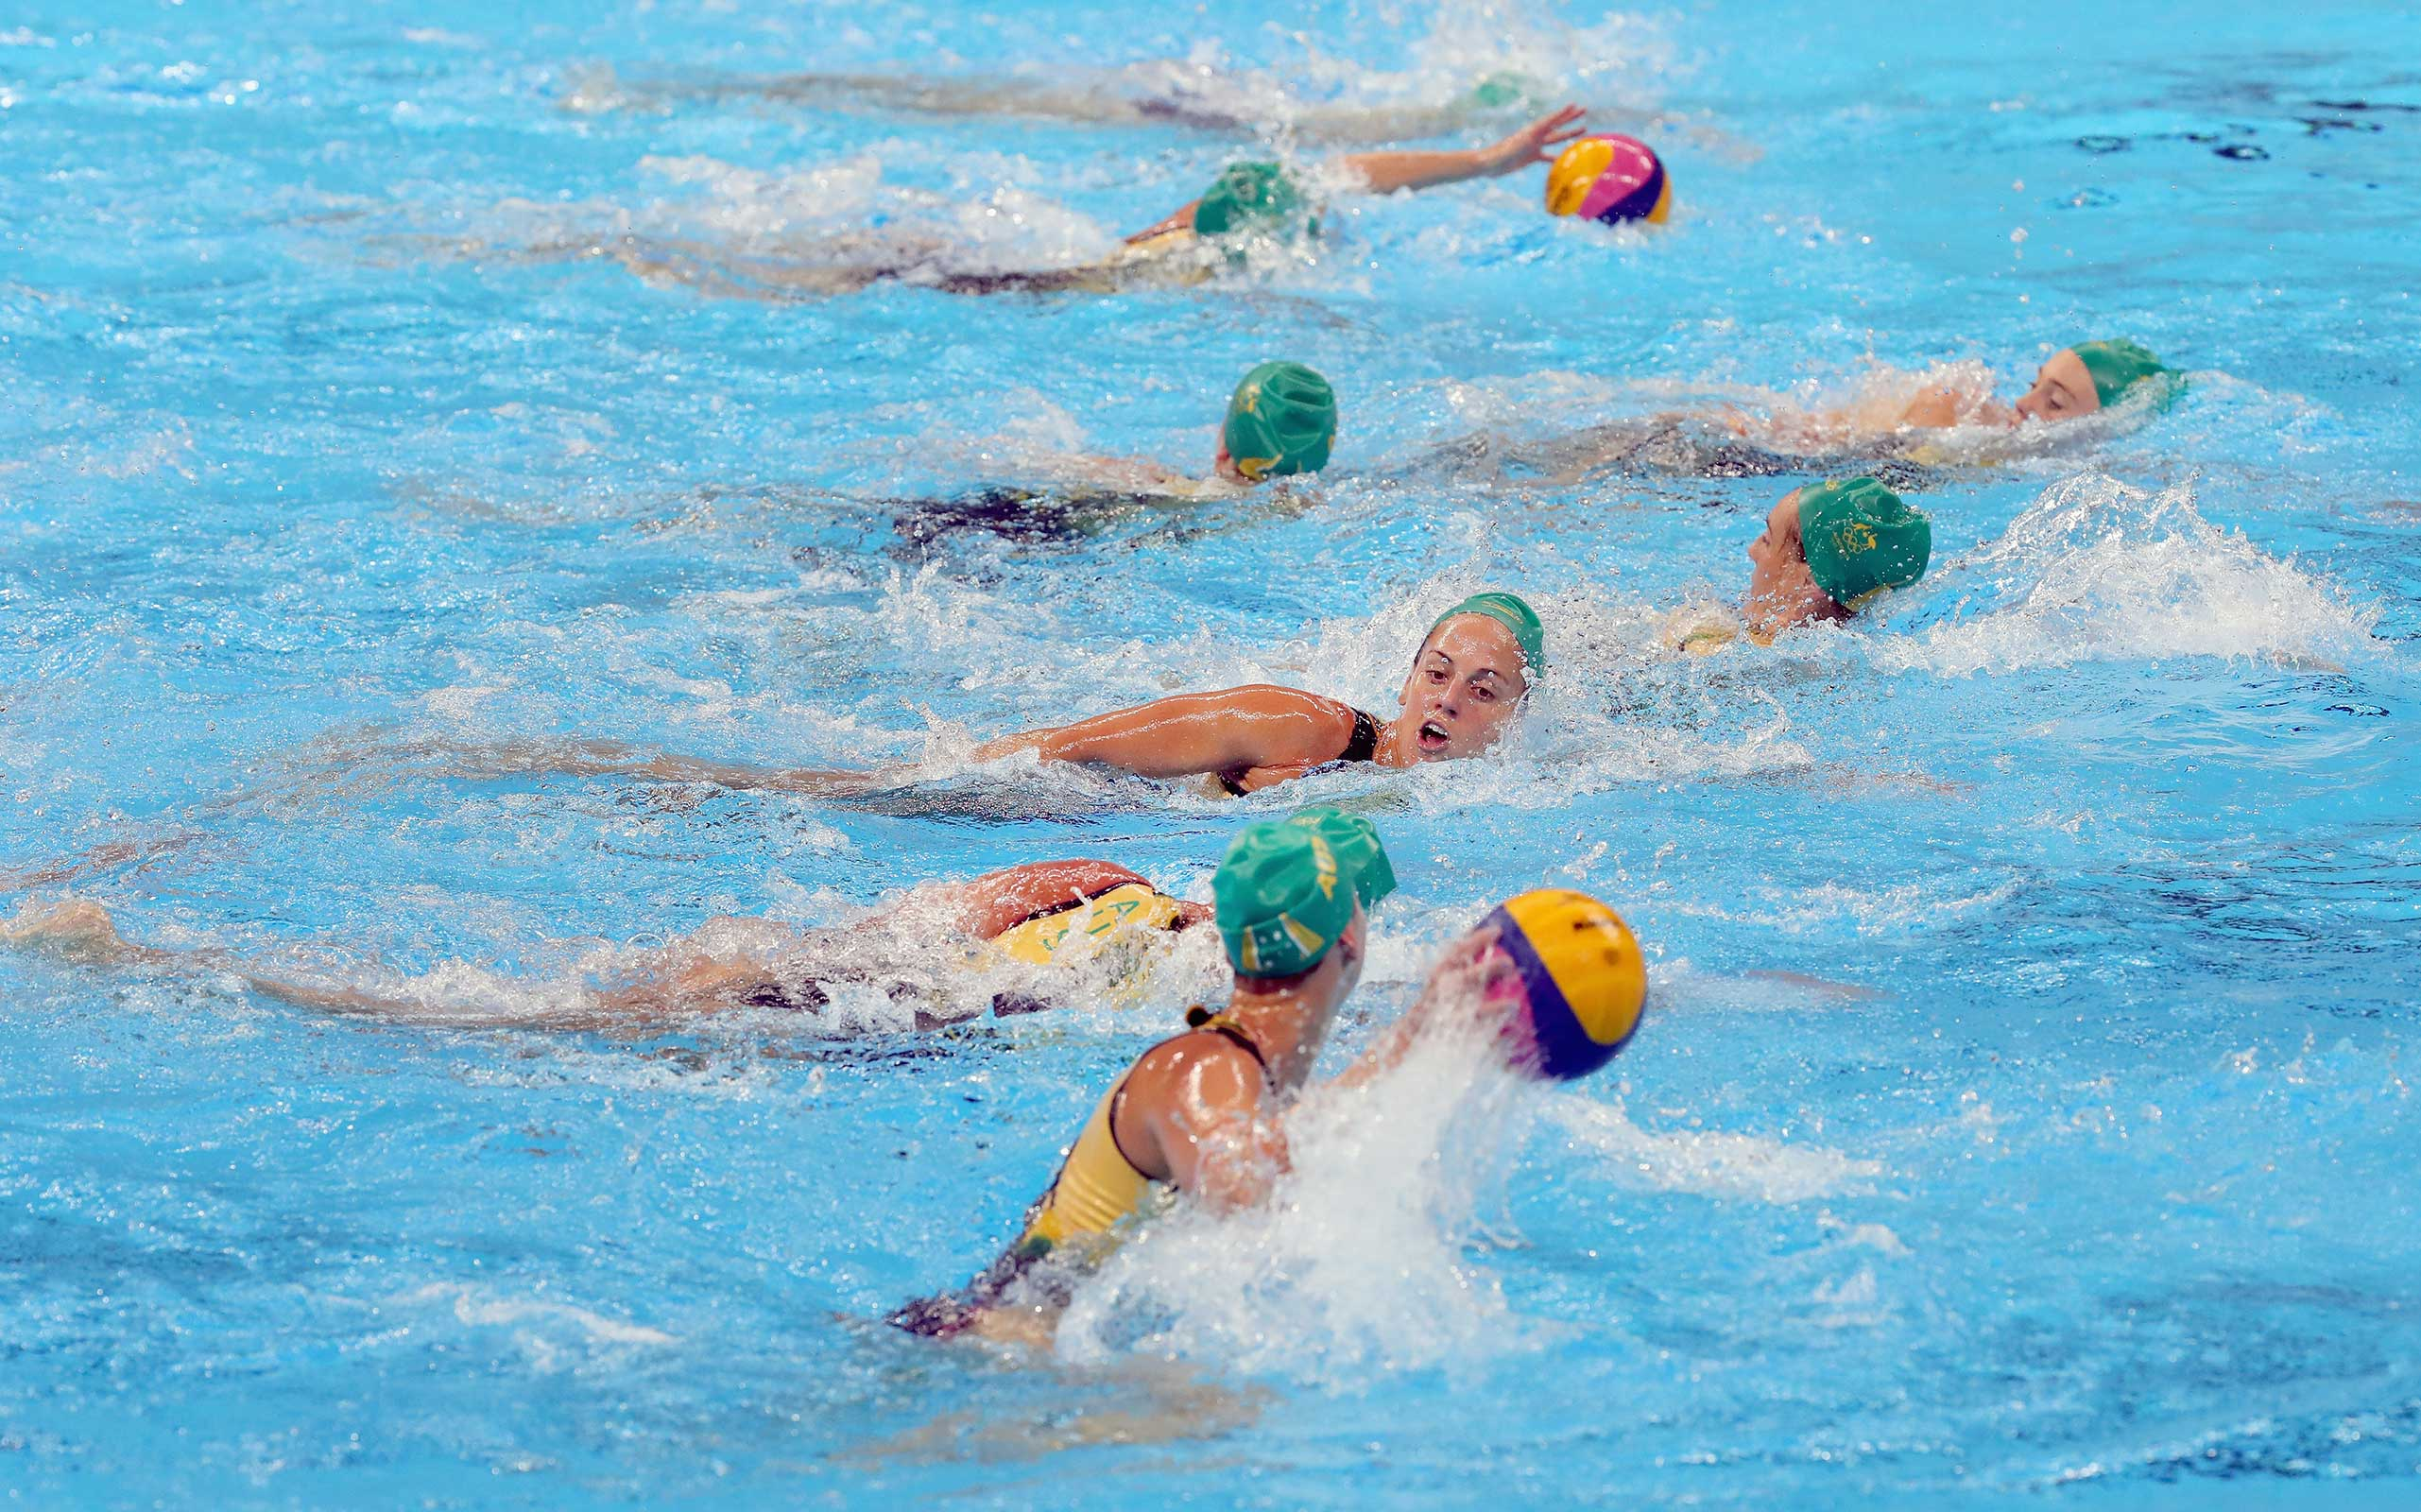 Members of the 2016 Australian Olympic Women's Water Polo Team during a training session at the Olympics Aquatics Stadium on August 3, 2016 in Rio de Janeiro, Brazil.